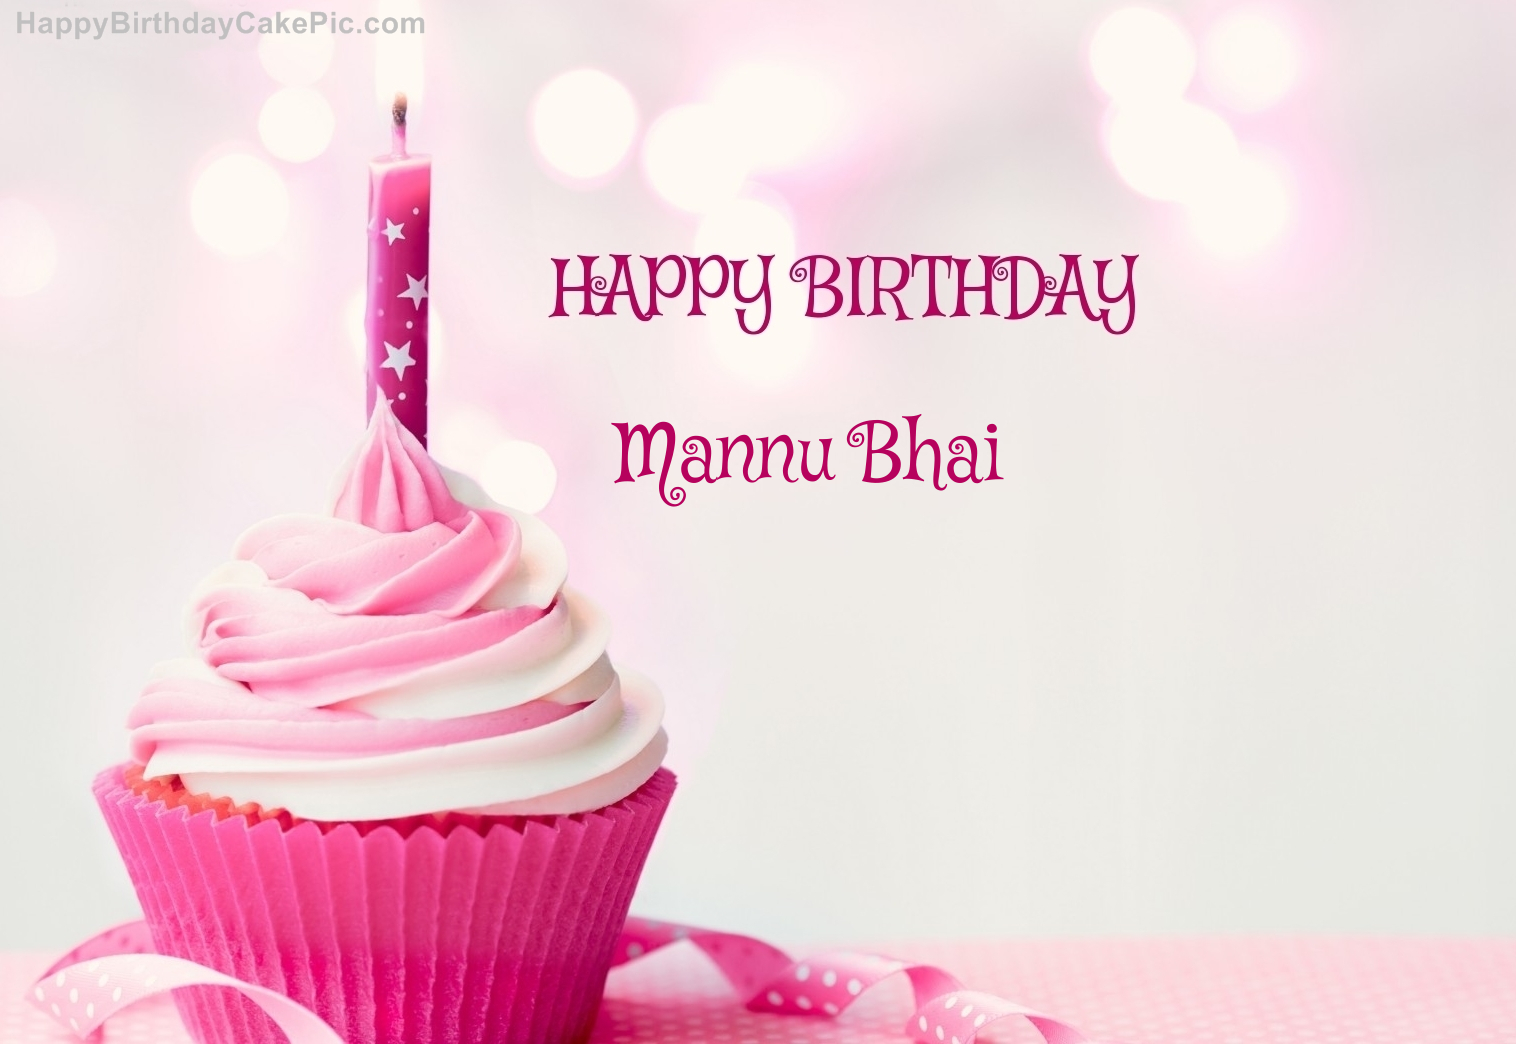 Happy Birthday Cupcake Candle Pink Cake For Mannu Bhai